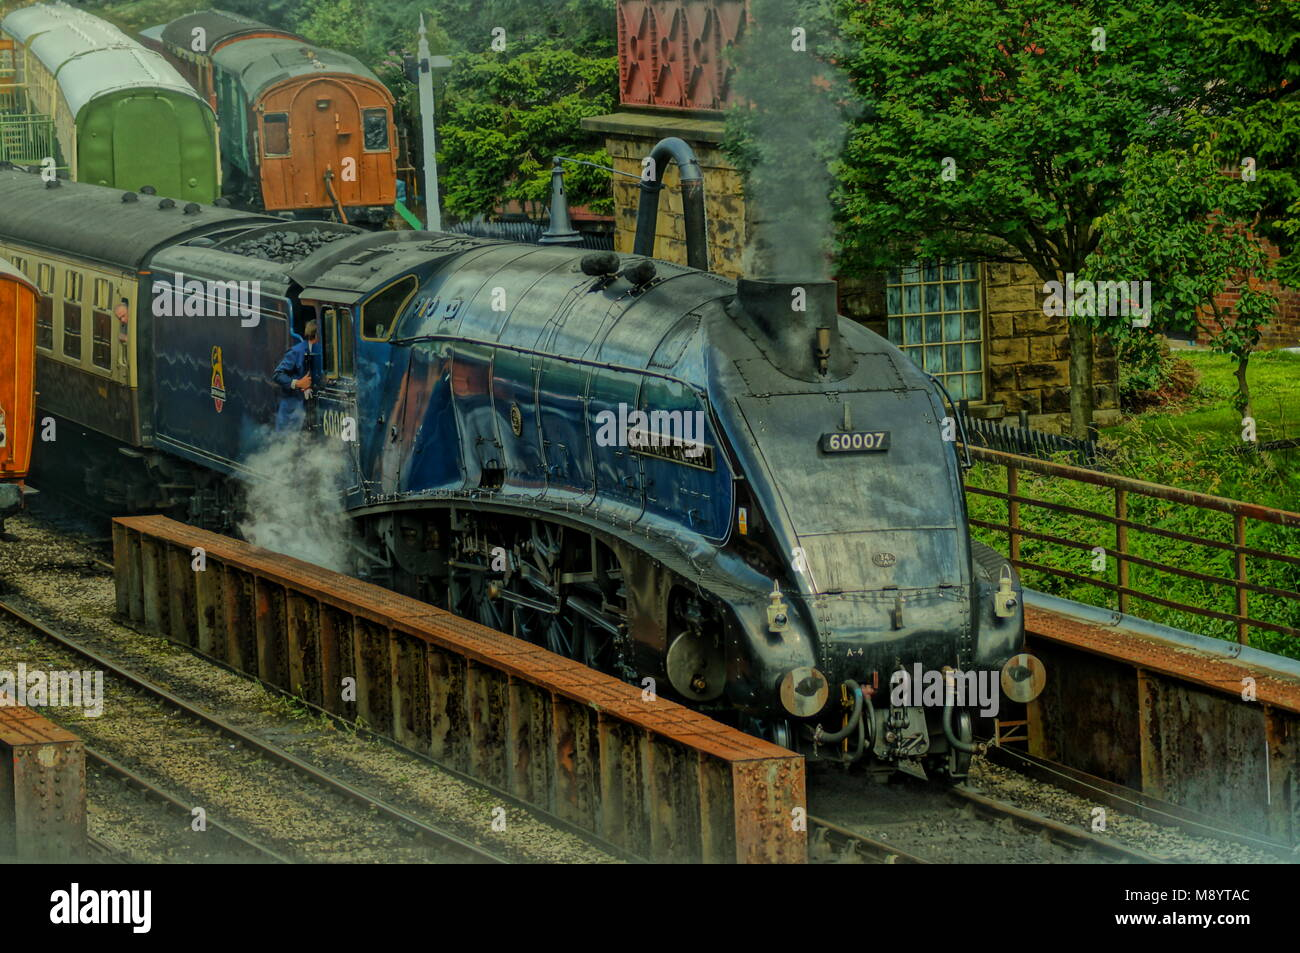 Sir Nigel Gresley A4 Class steam train preparing to leave Goathland  (known on Heartbeat as Aidensfield) station - Stock Image